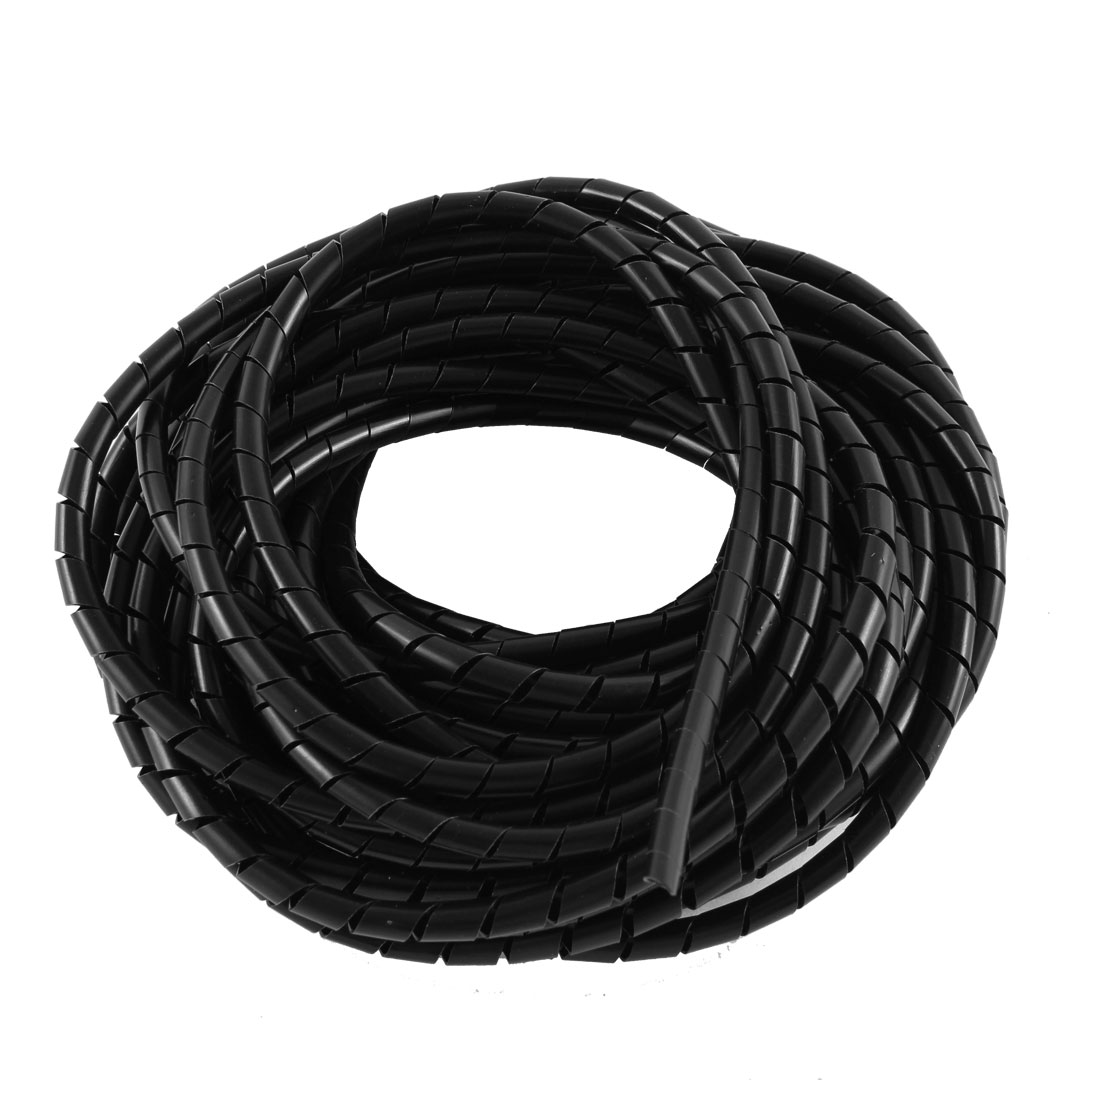 Black Polyethylene Spiral Wrapping Band Cable Wire Manager 6mm Dia 15M Long